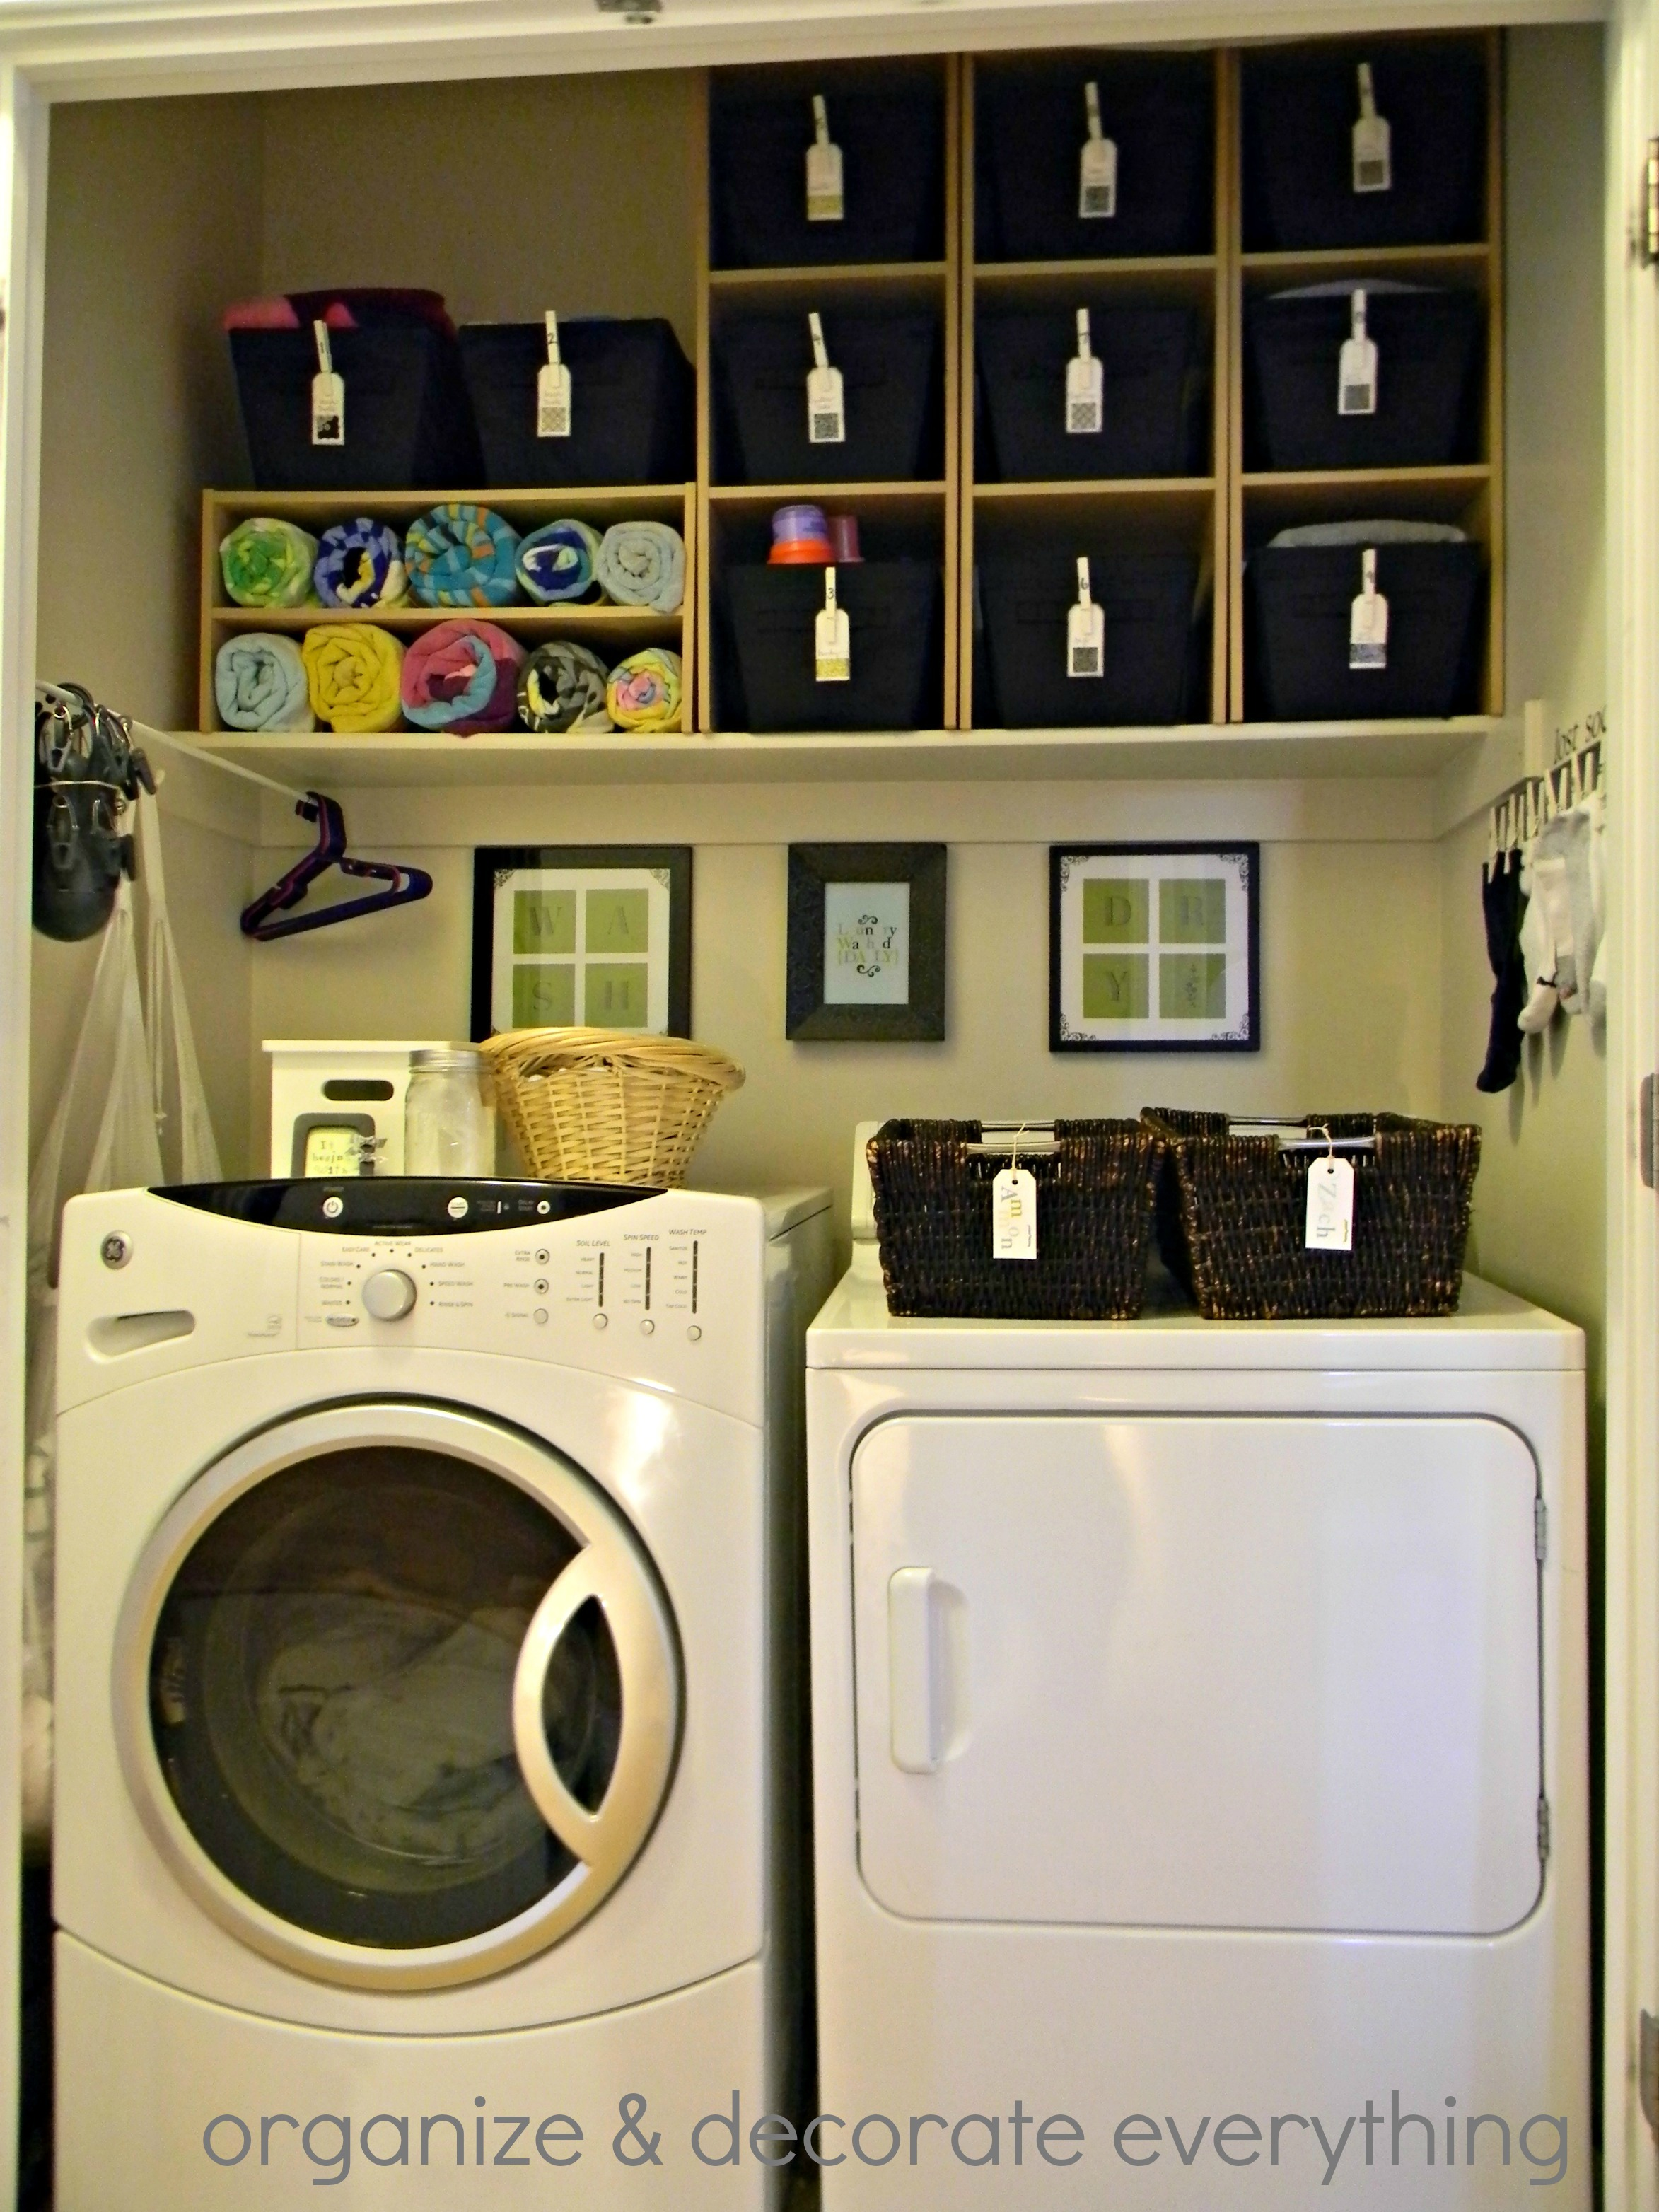 Gallery for laundry room closet organization ideas - Laundry room organizing ideas ...